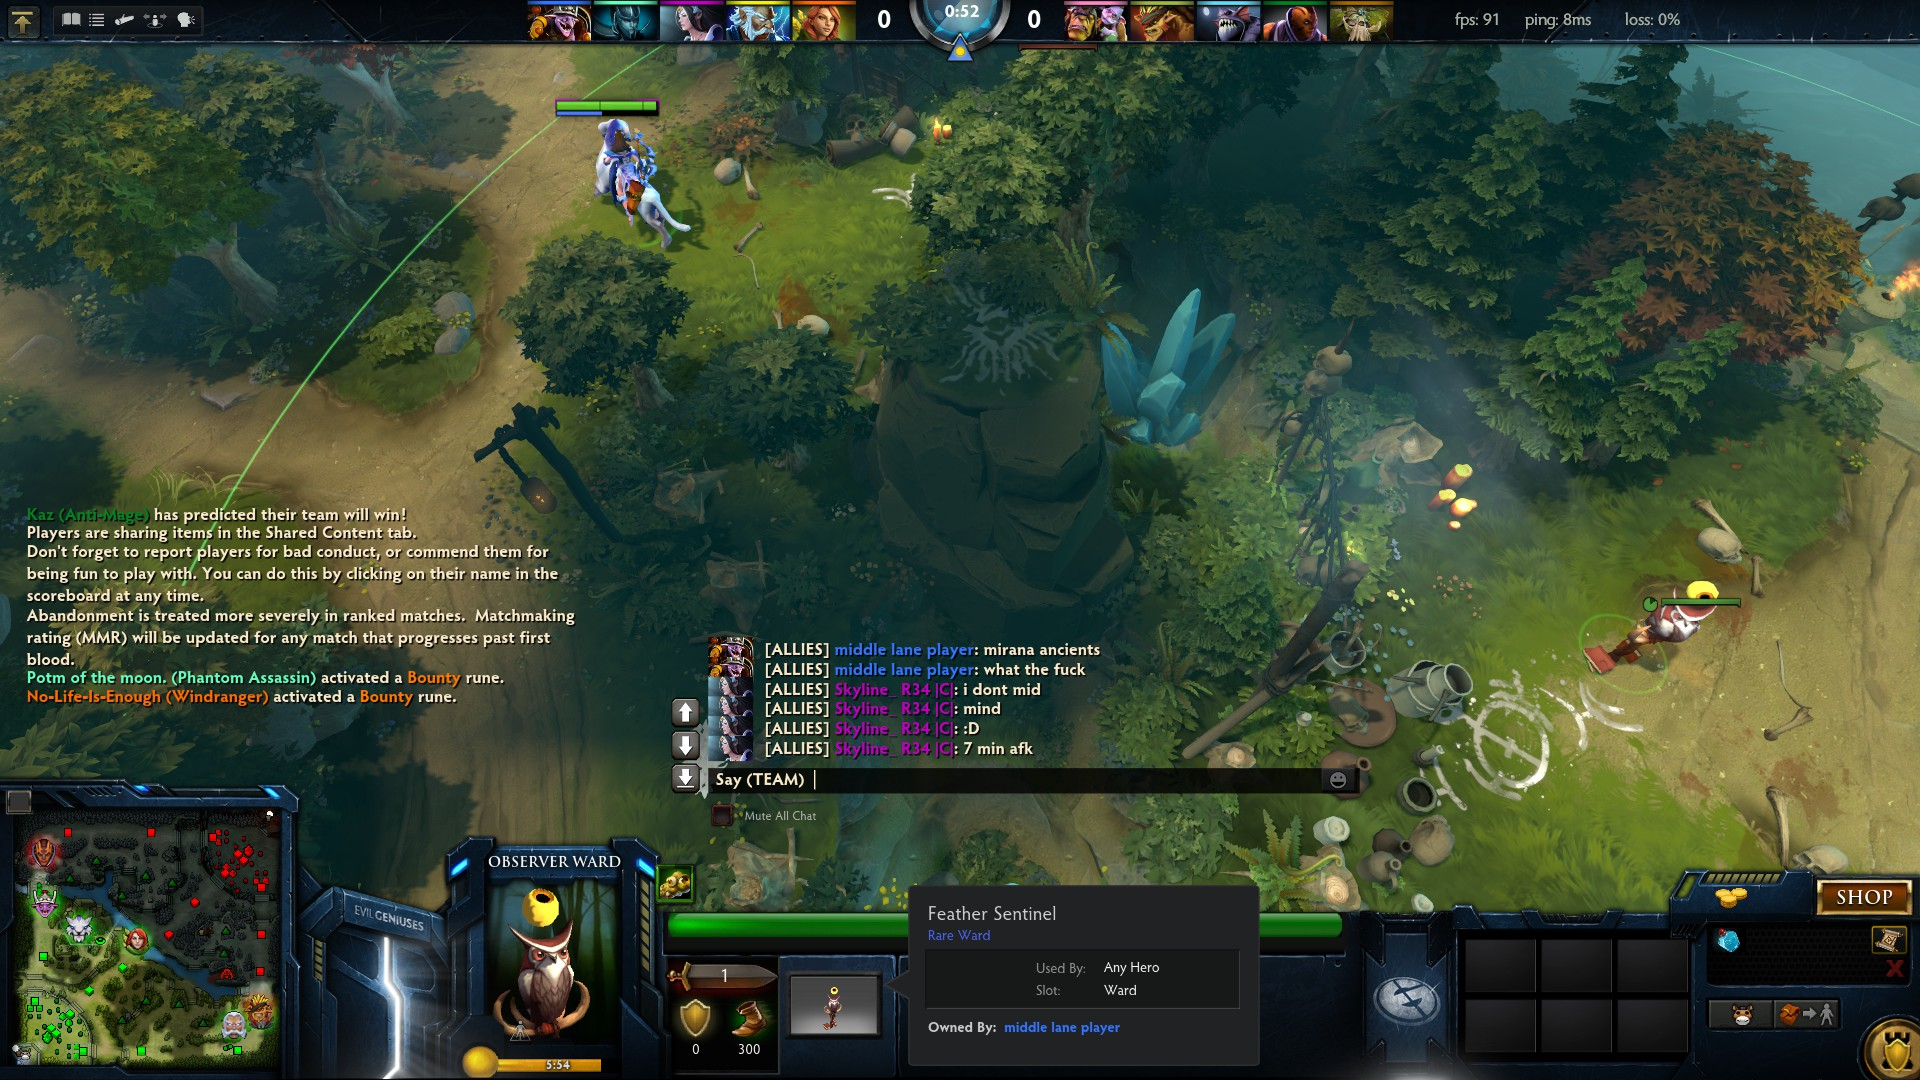 Dota R34 fuck you leafeator image - id: 3044 - image abyss